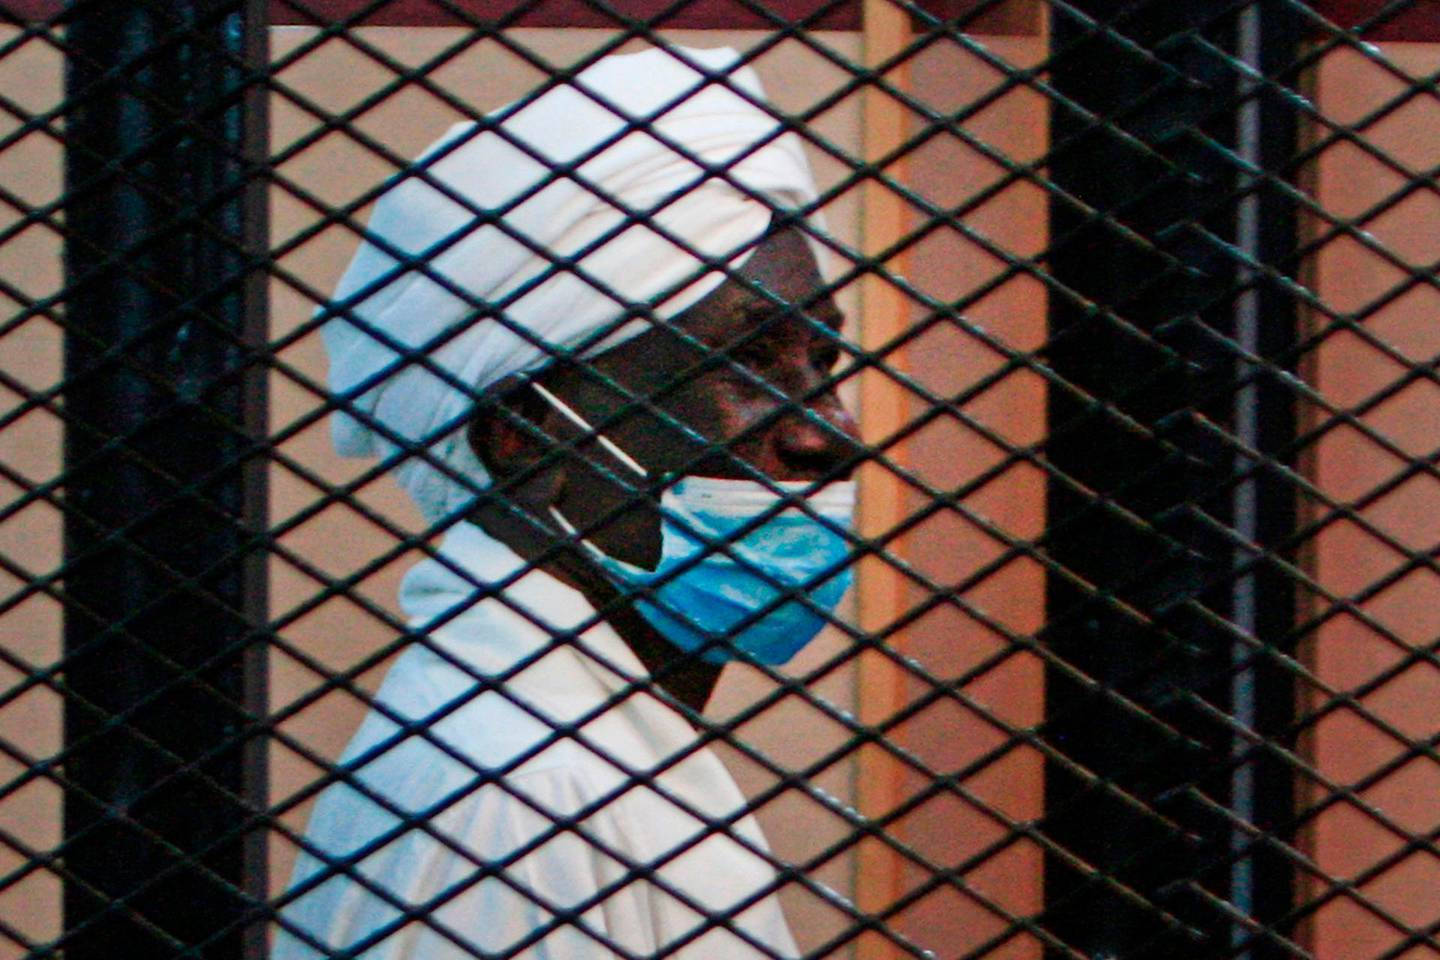 CORRECTION / Sudan's former vice presidents Ali Osman Taha is pictured behind the bars during the trial of ousted president Omar al-Bashir, along with others at a courthouse in the Sudanese capital Khartoum, on August 25, 2020.  The trial of Sudan's ousted president Omar al-Bashir, on charges related to the coup that brought him to power in 1989, was adjourned to September 1, the judge said.  / AFP / Ebrahim HAMID